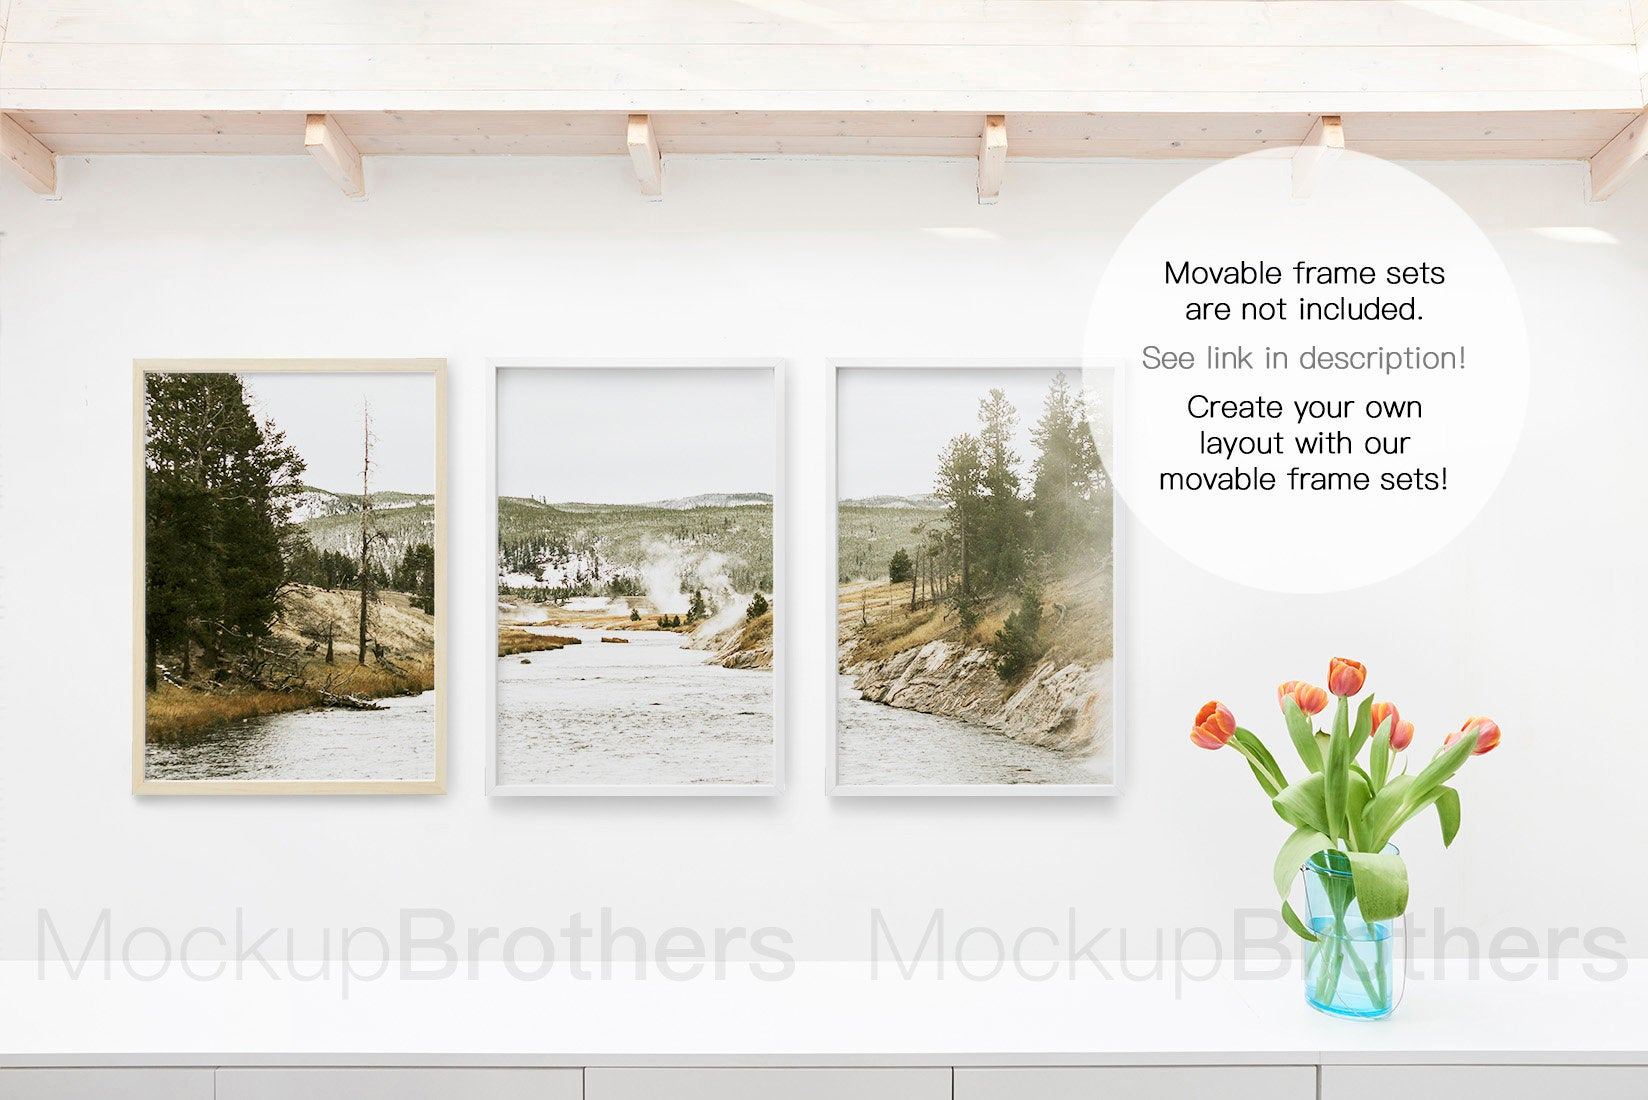 Frame mockup with flowers by mockup Brother